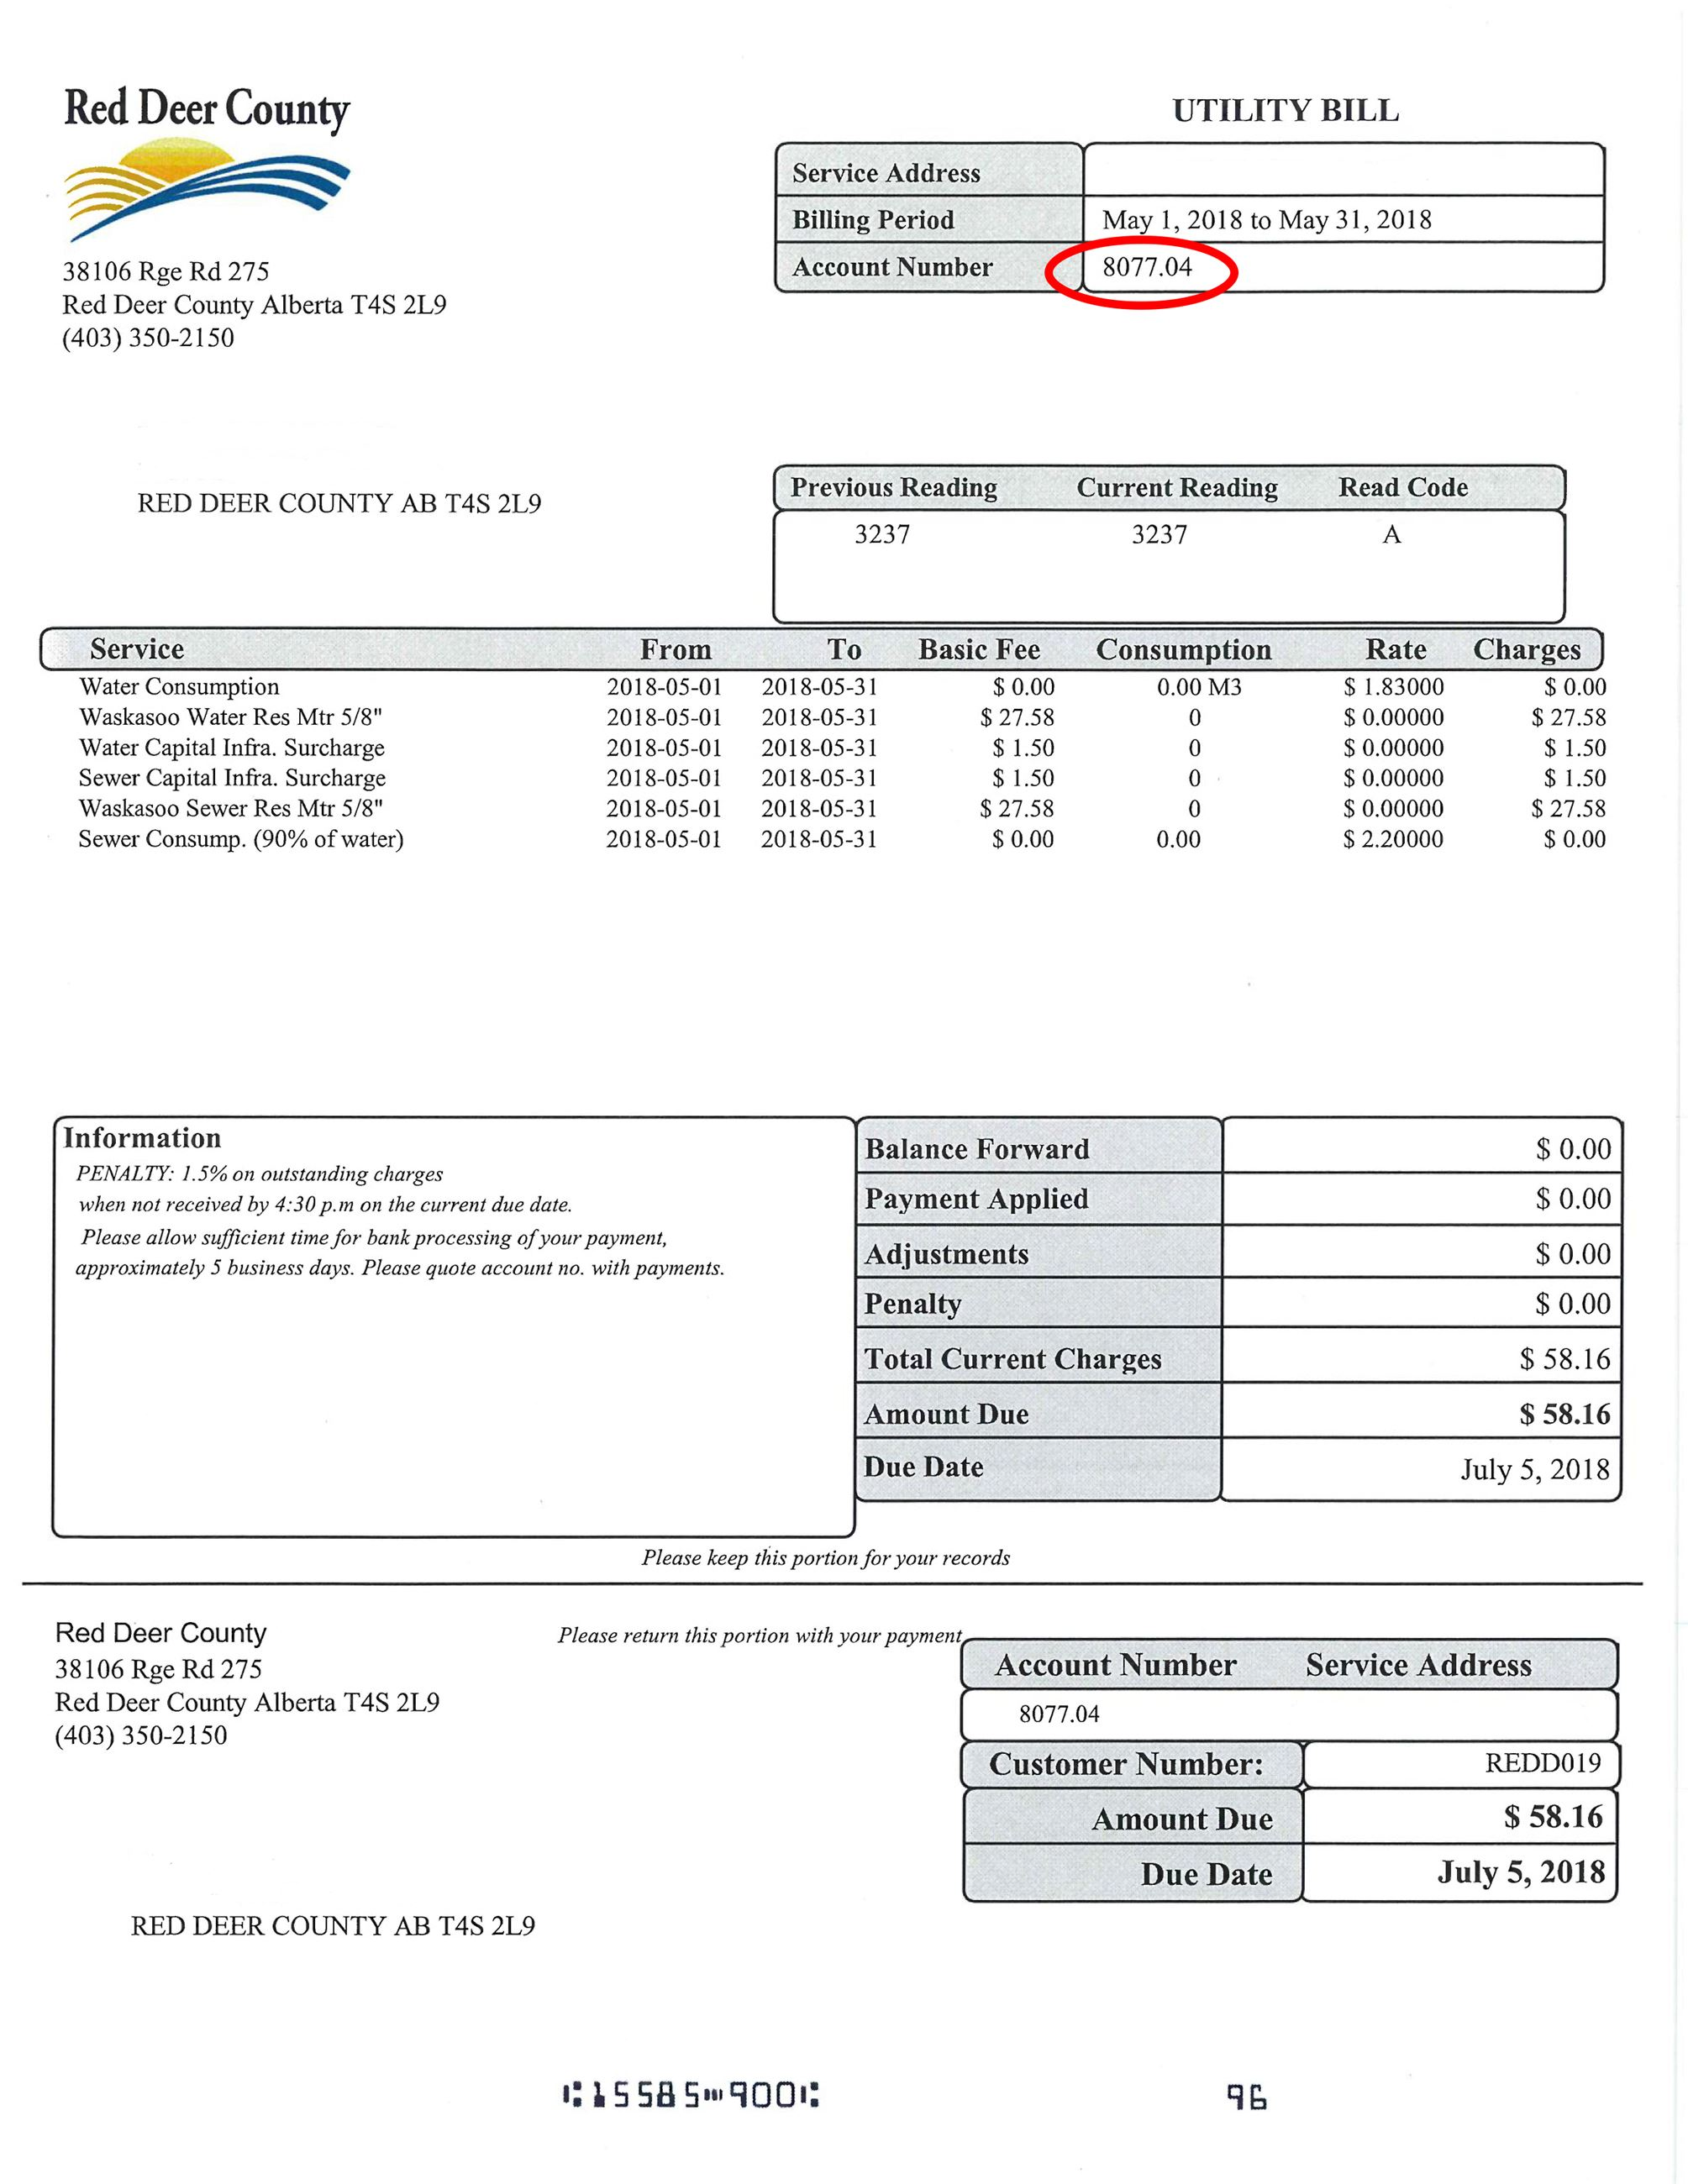 Utility bill example_edited-1